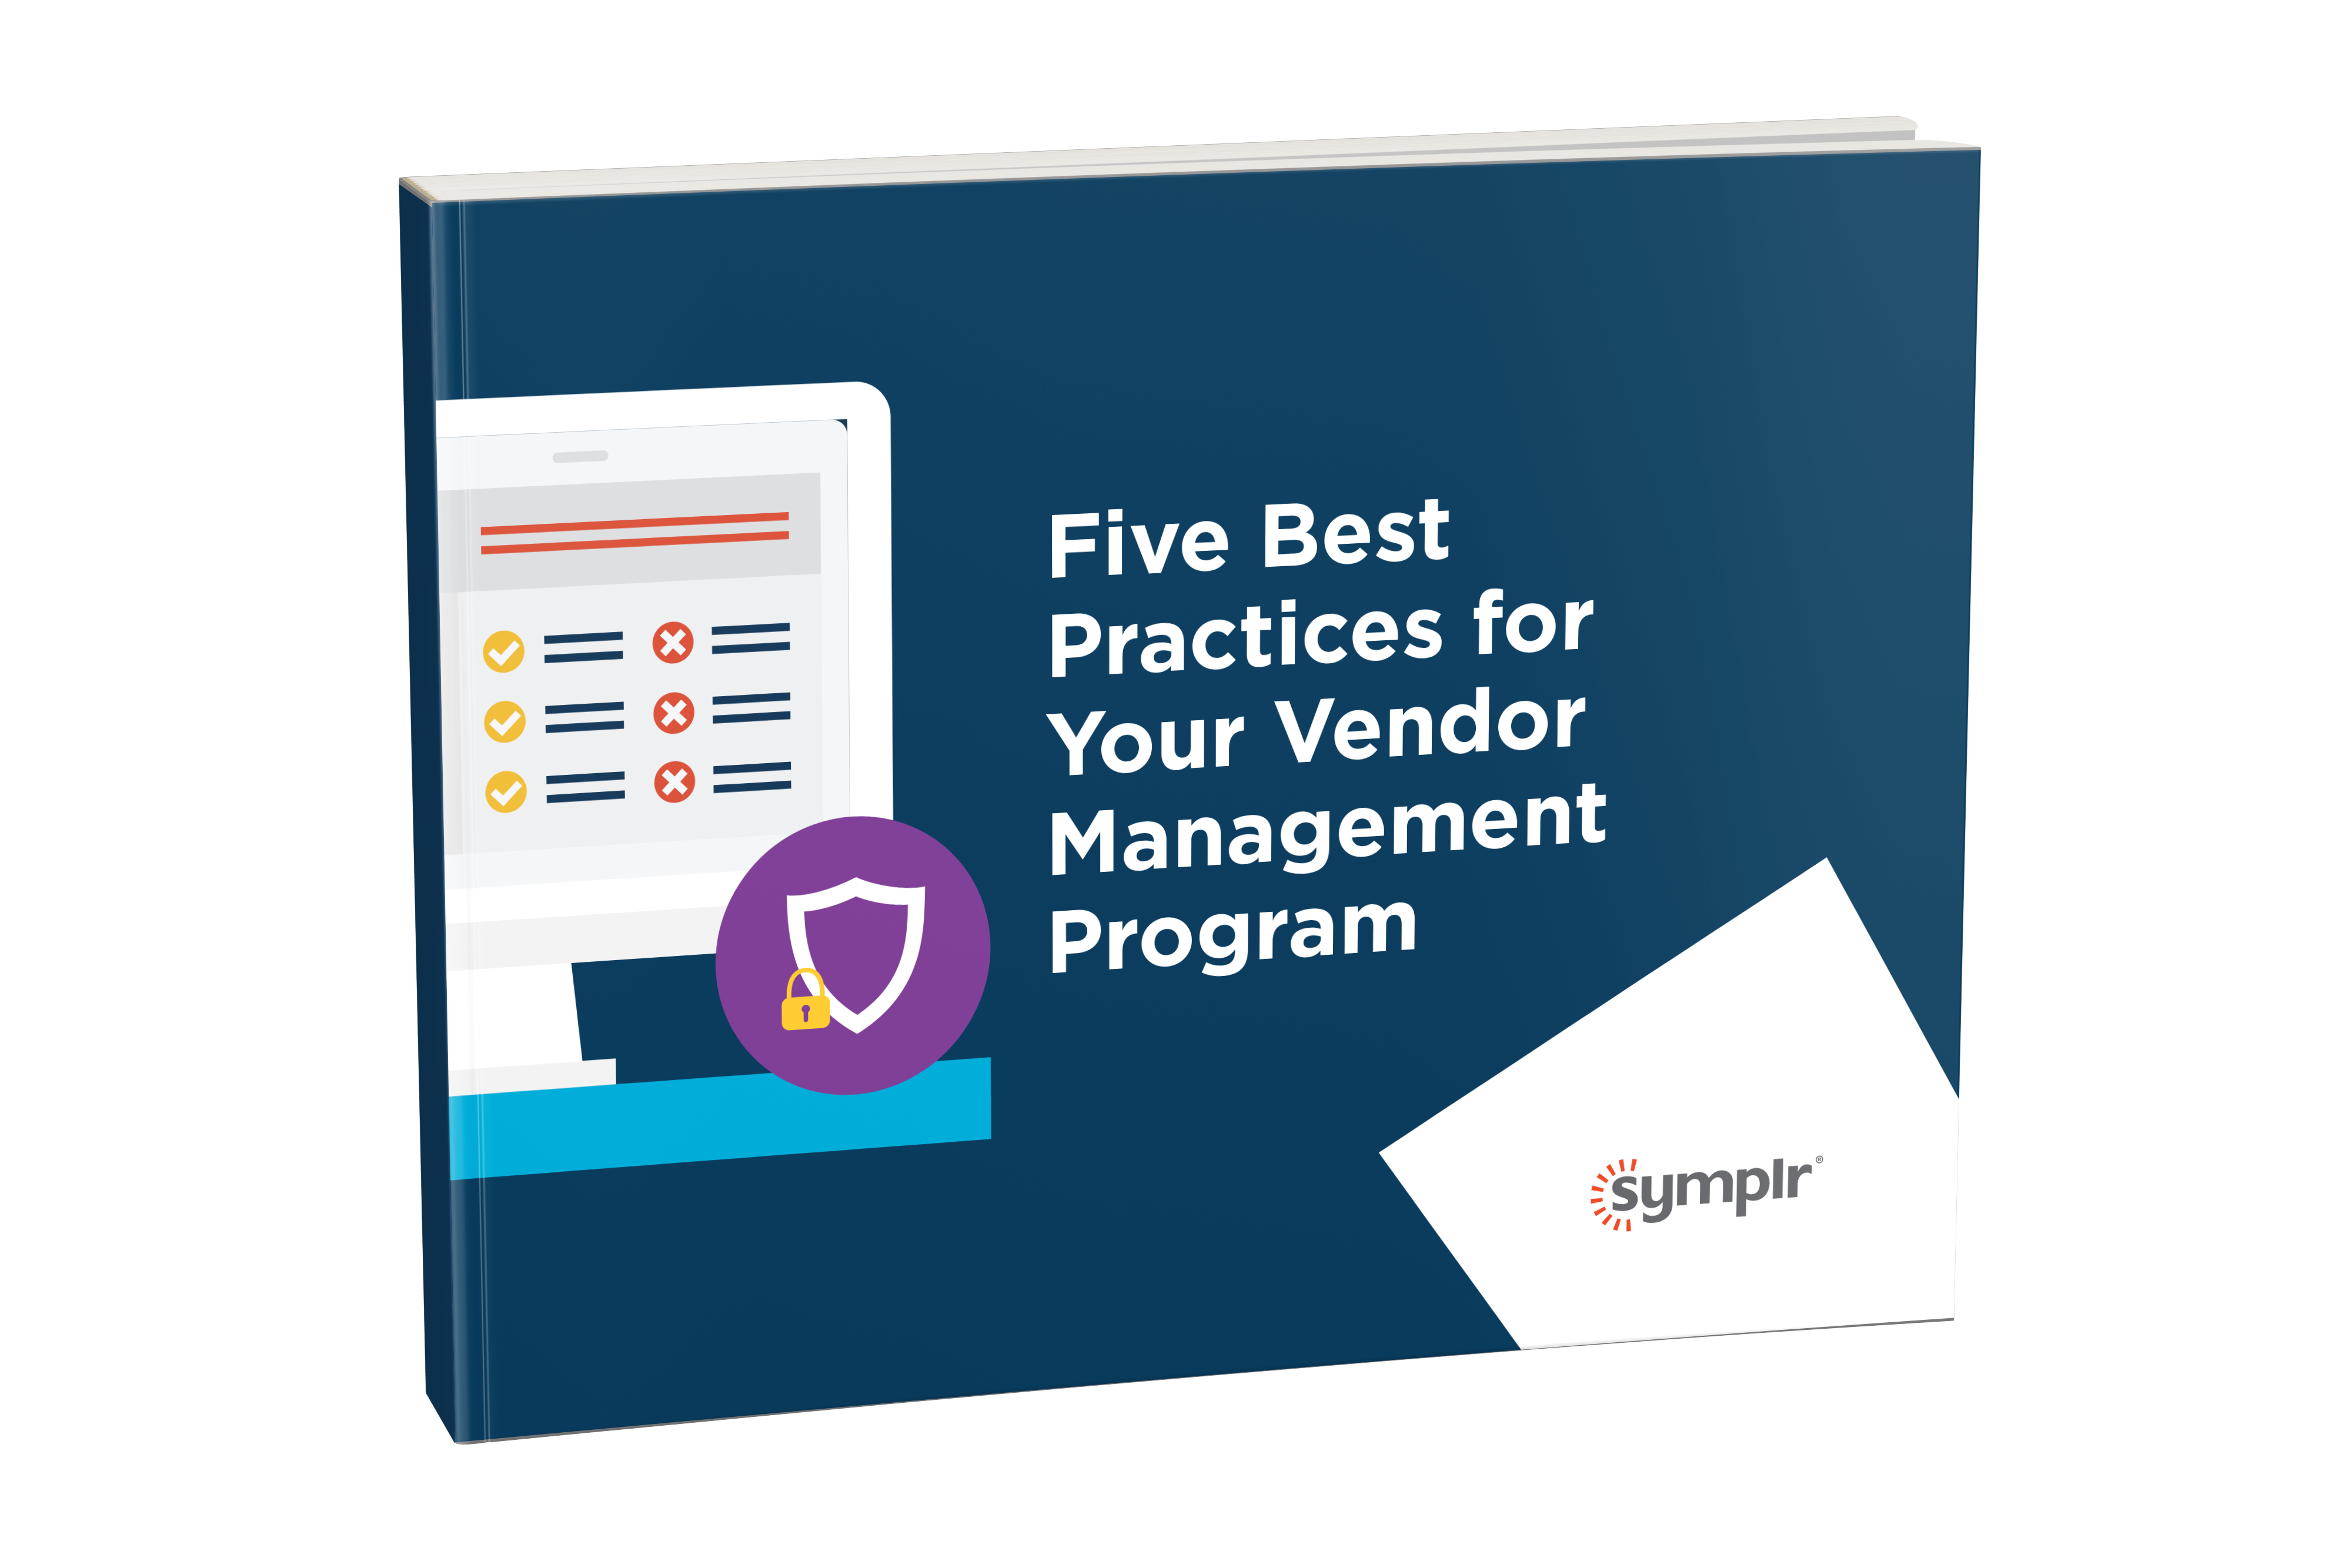 ebook_five best practices for your vendor management program